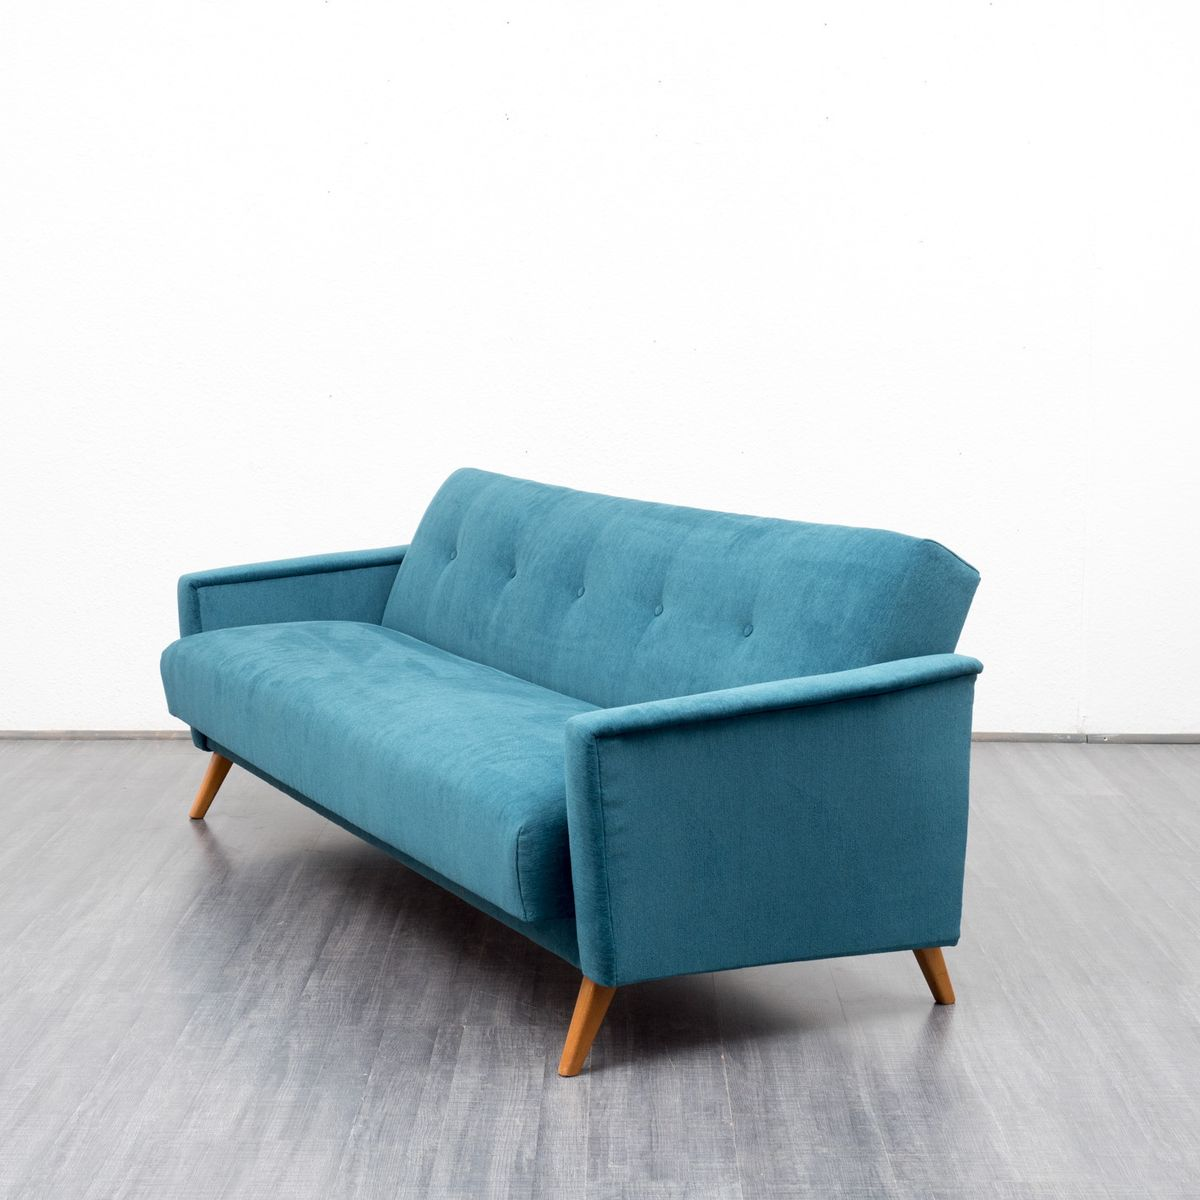 Petrol Blue Velours Couch And Daybed 1950s For Sale At Pamono